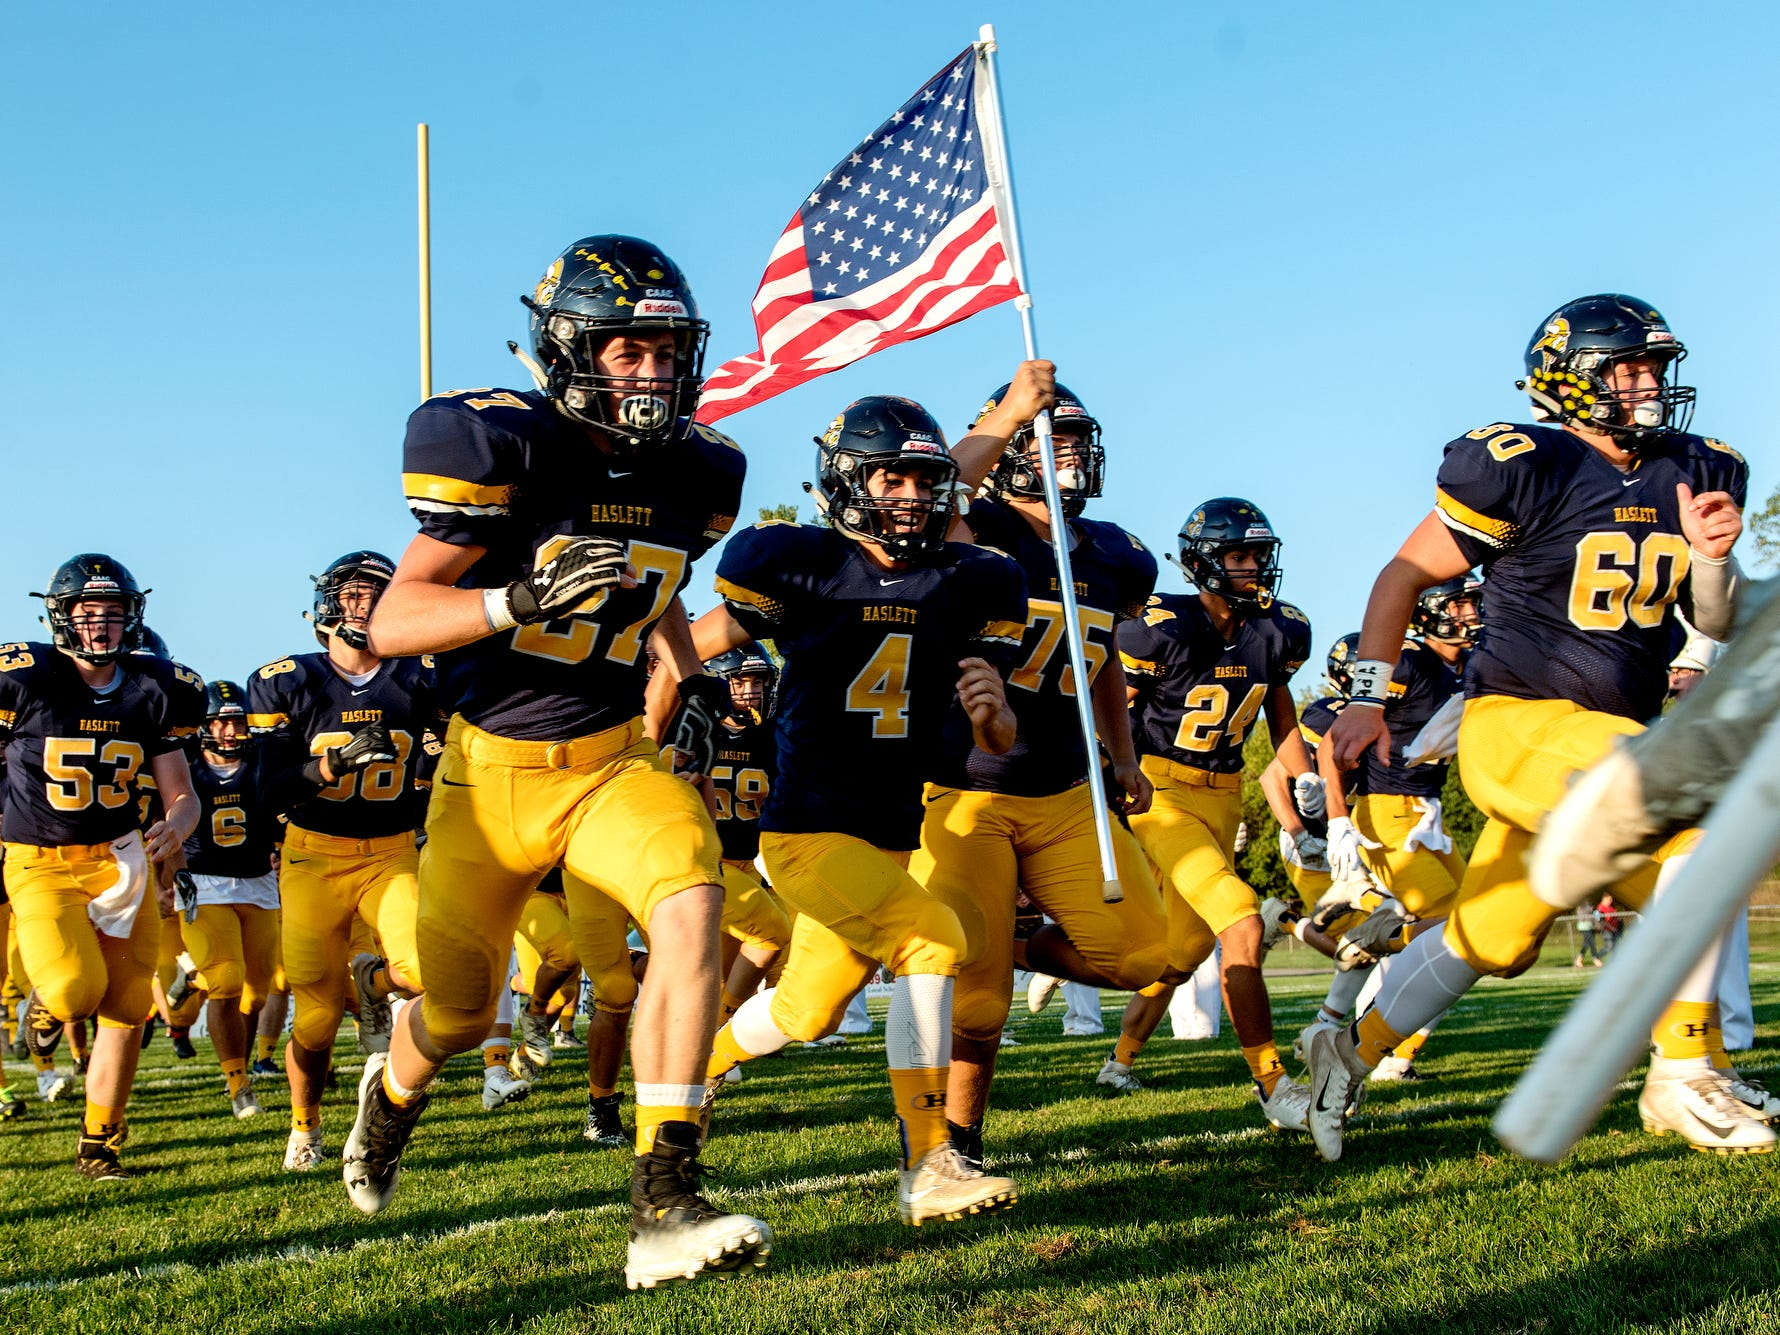 The Haslett football team takes the field before the Vikings' game against Fowlerville on Friday, Sept. 14, 2018, at Haslett High School.